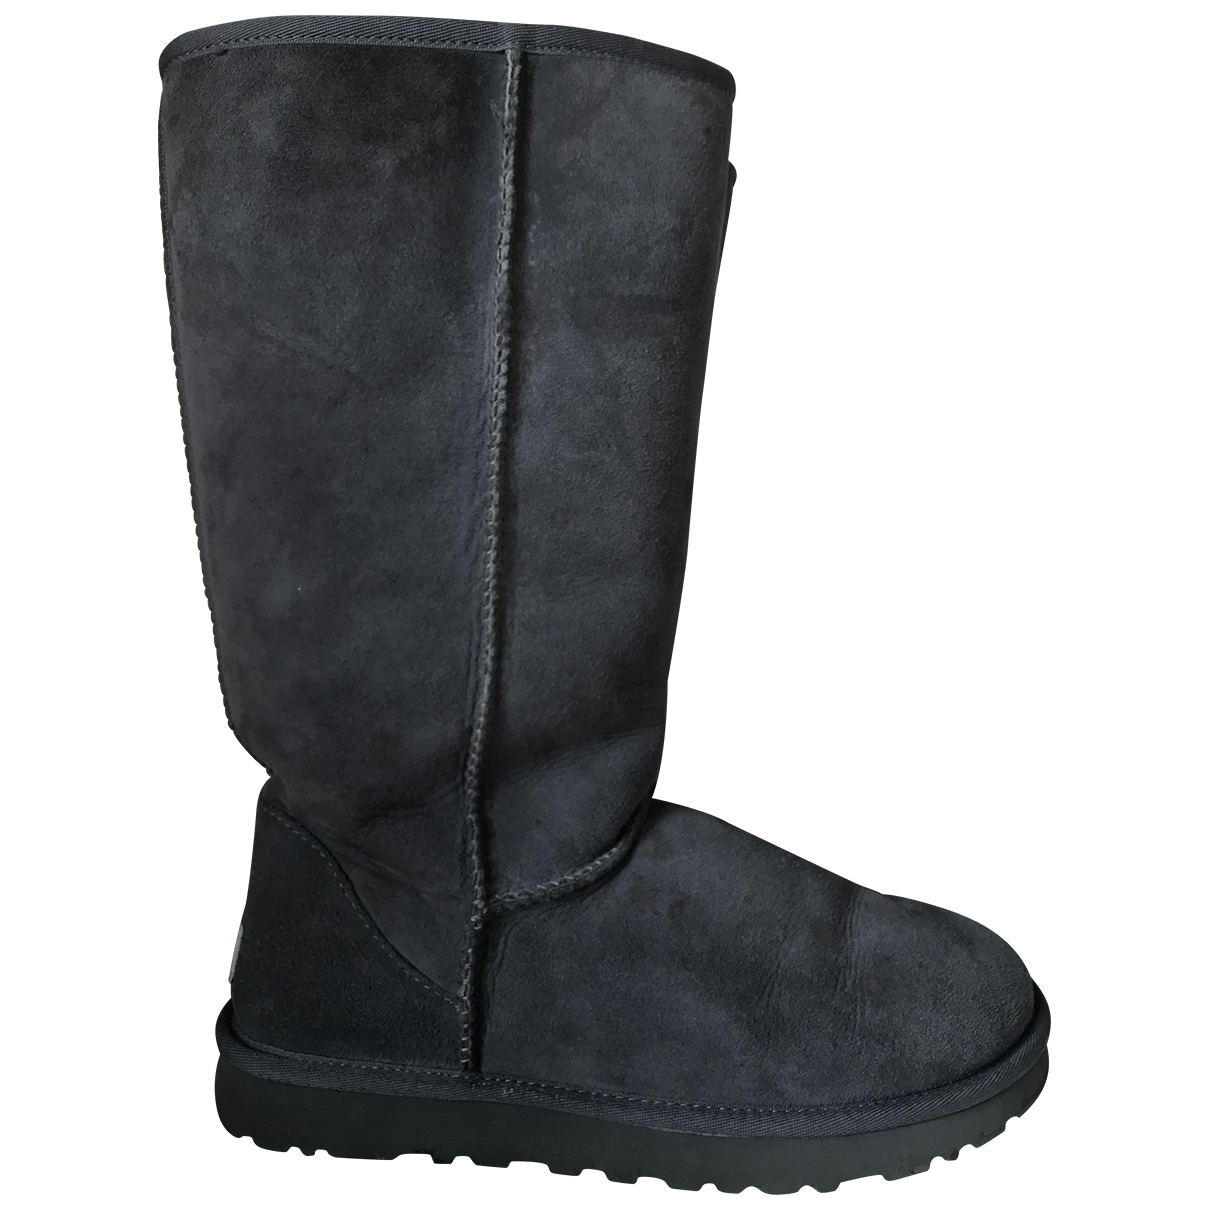 Ugg \N Grey Suede Boots for Women 9 US